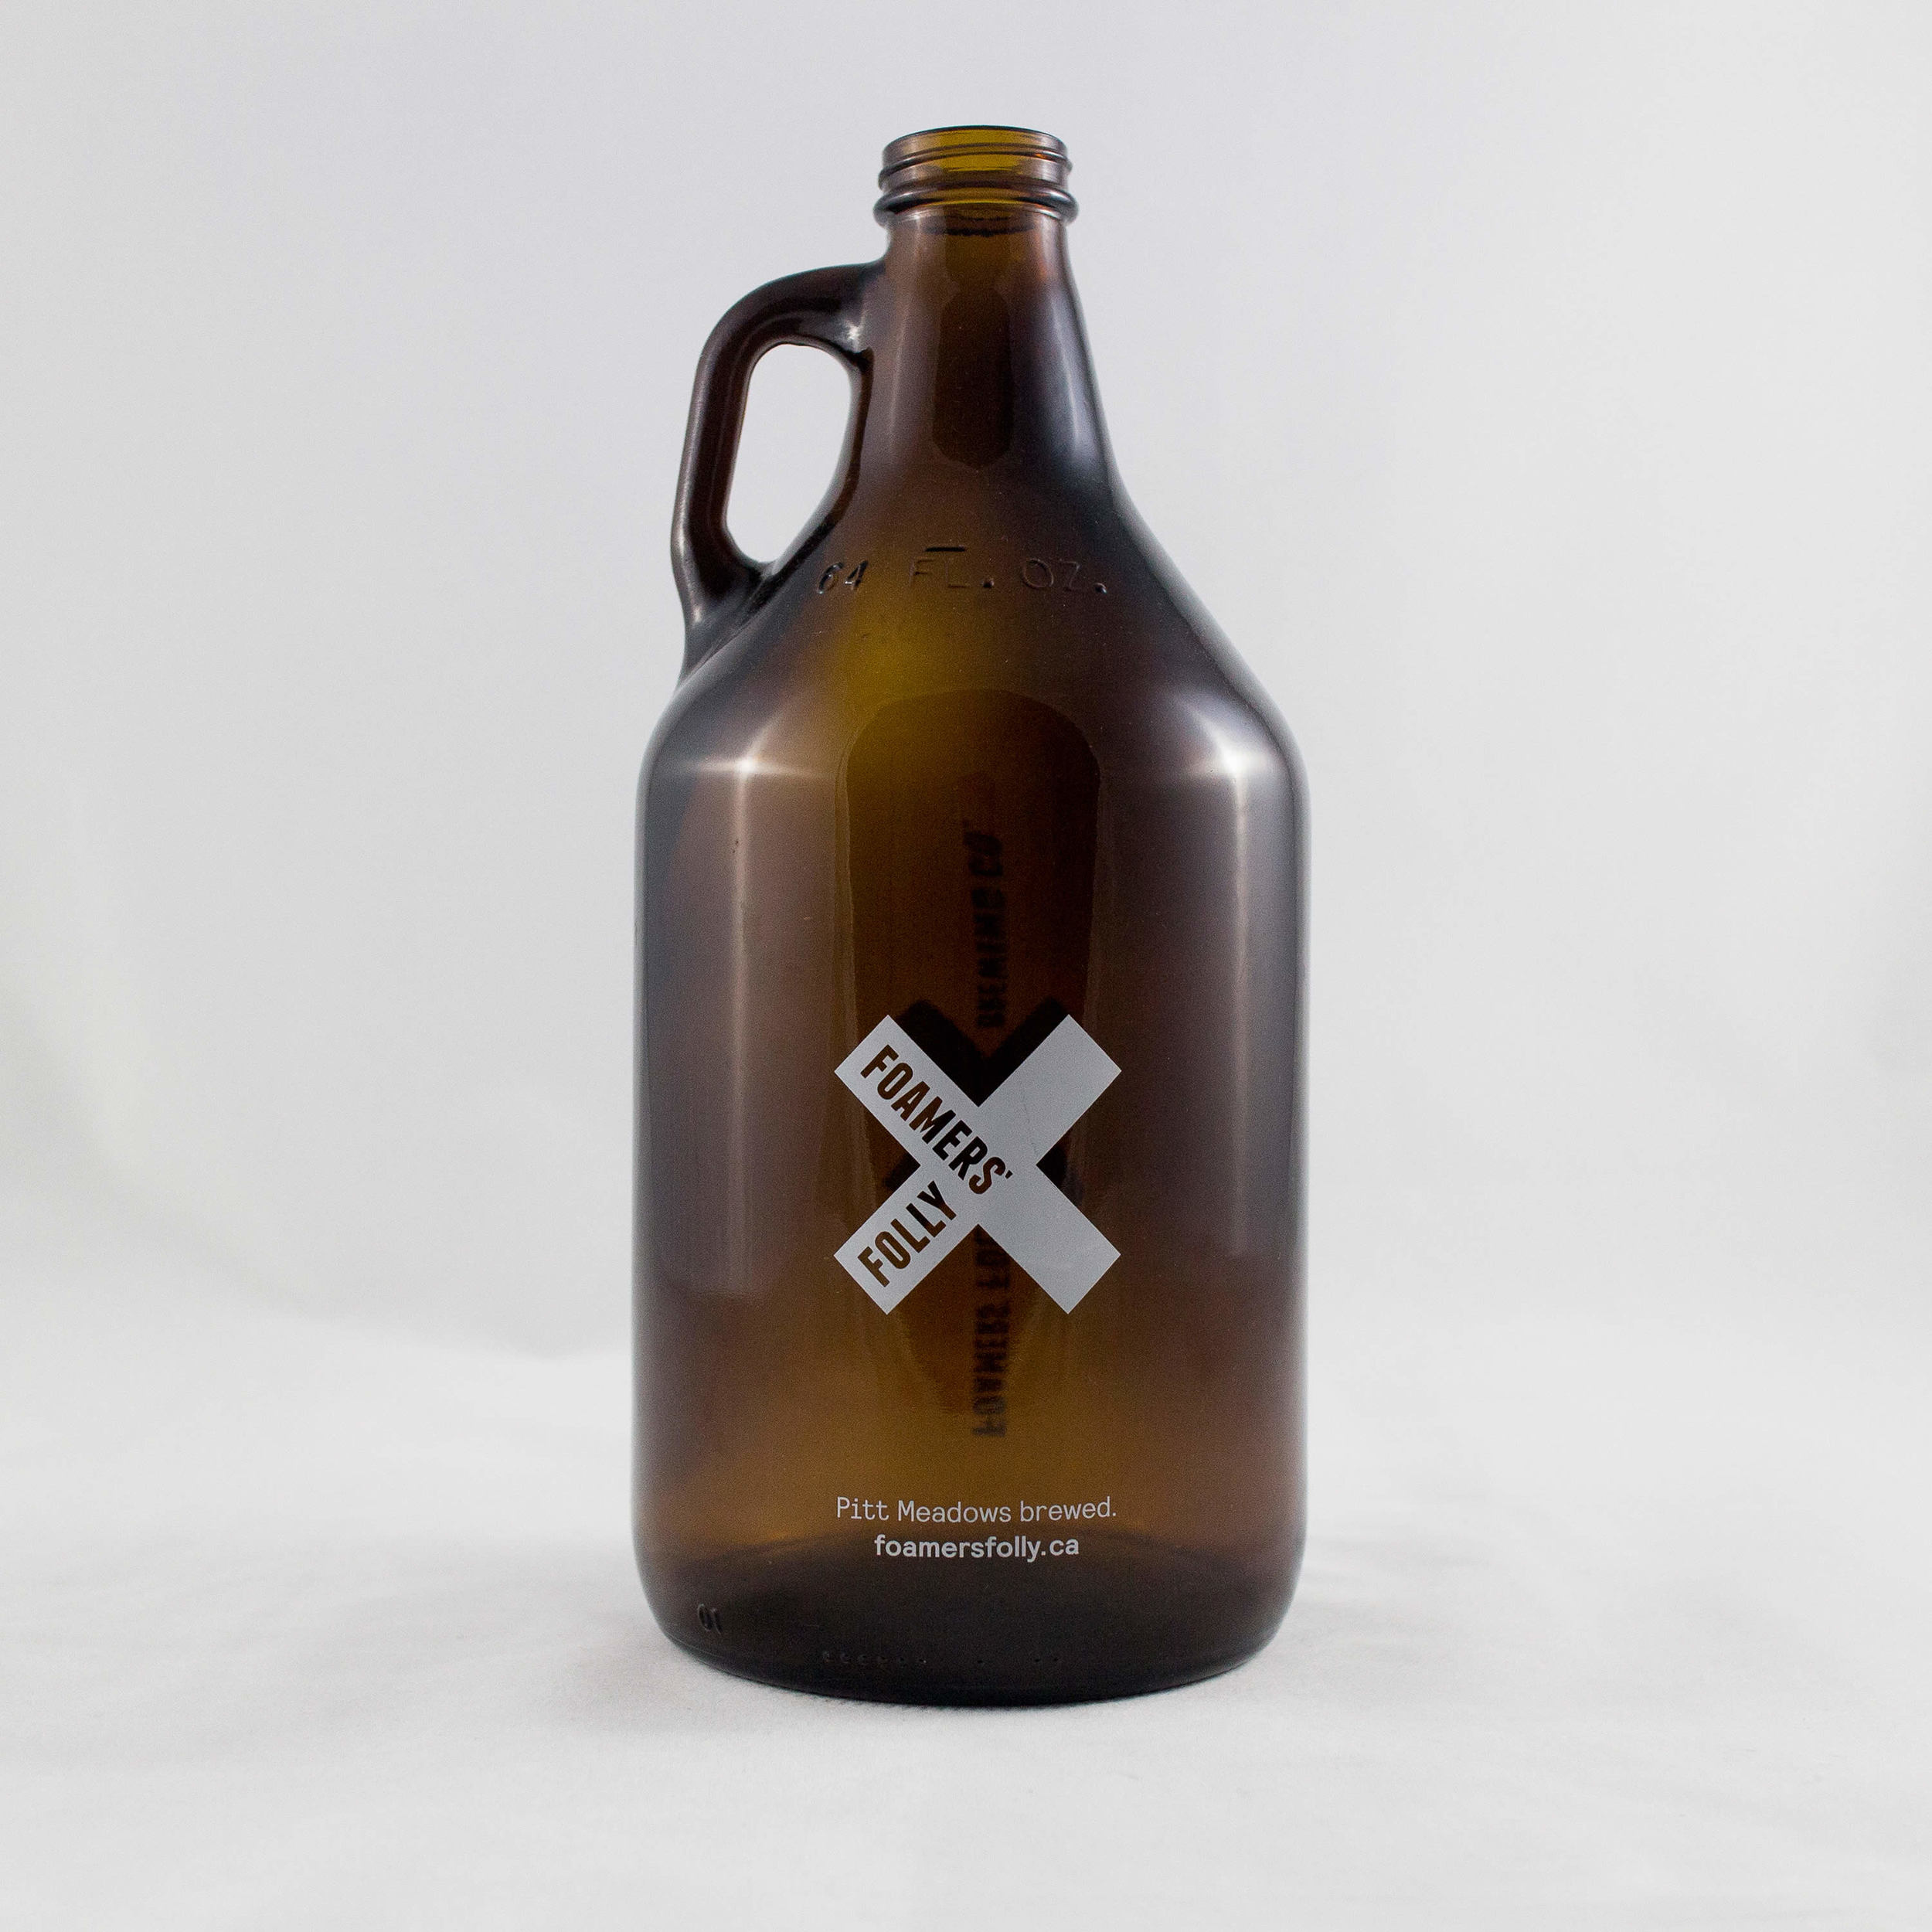 Original growler design